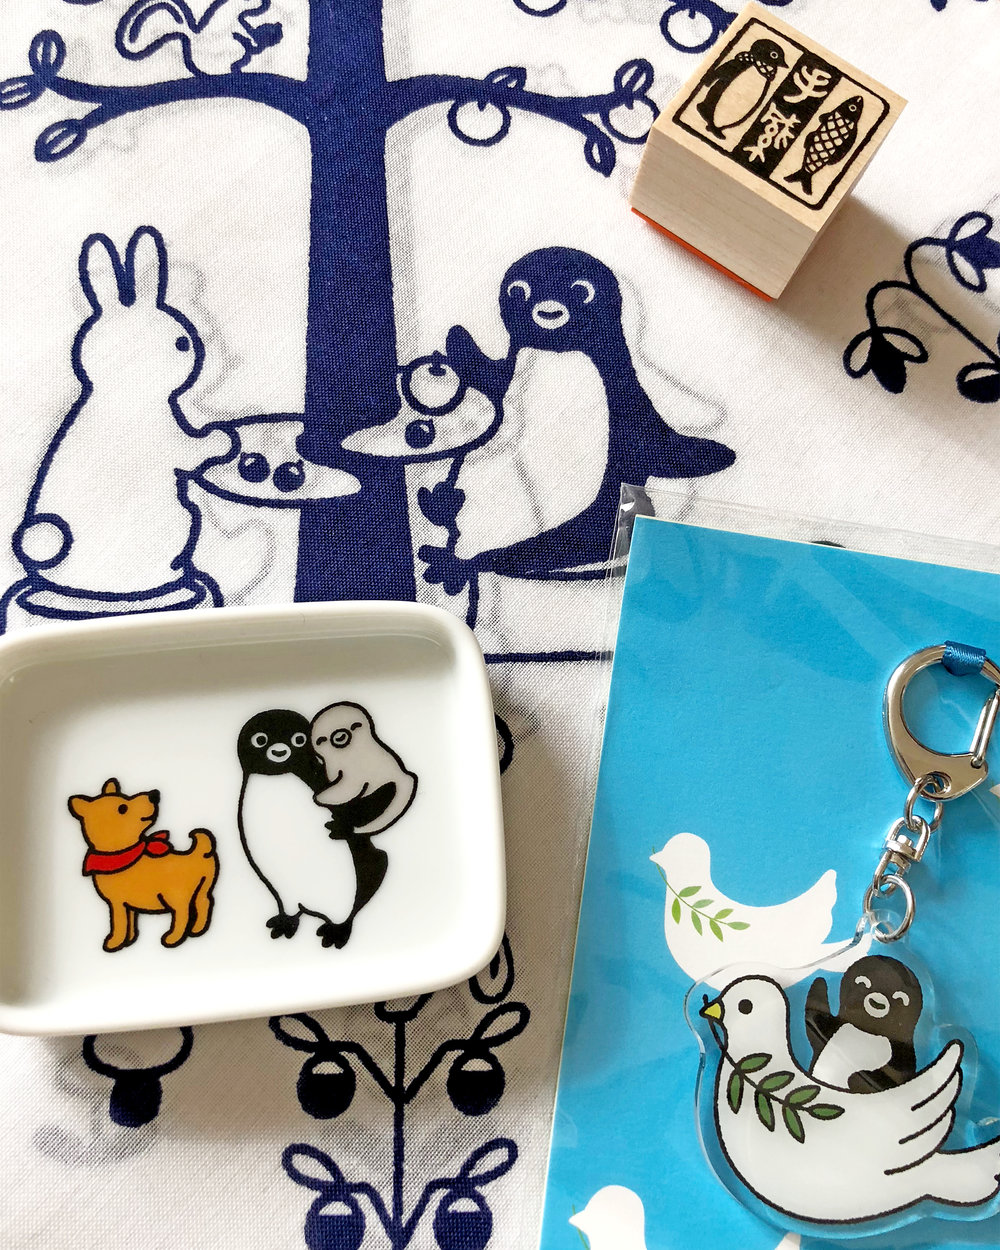 Suica products: stamp, small ceramic dish, keychain, and furoshiki wrapping